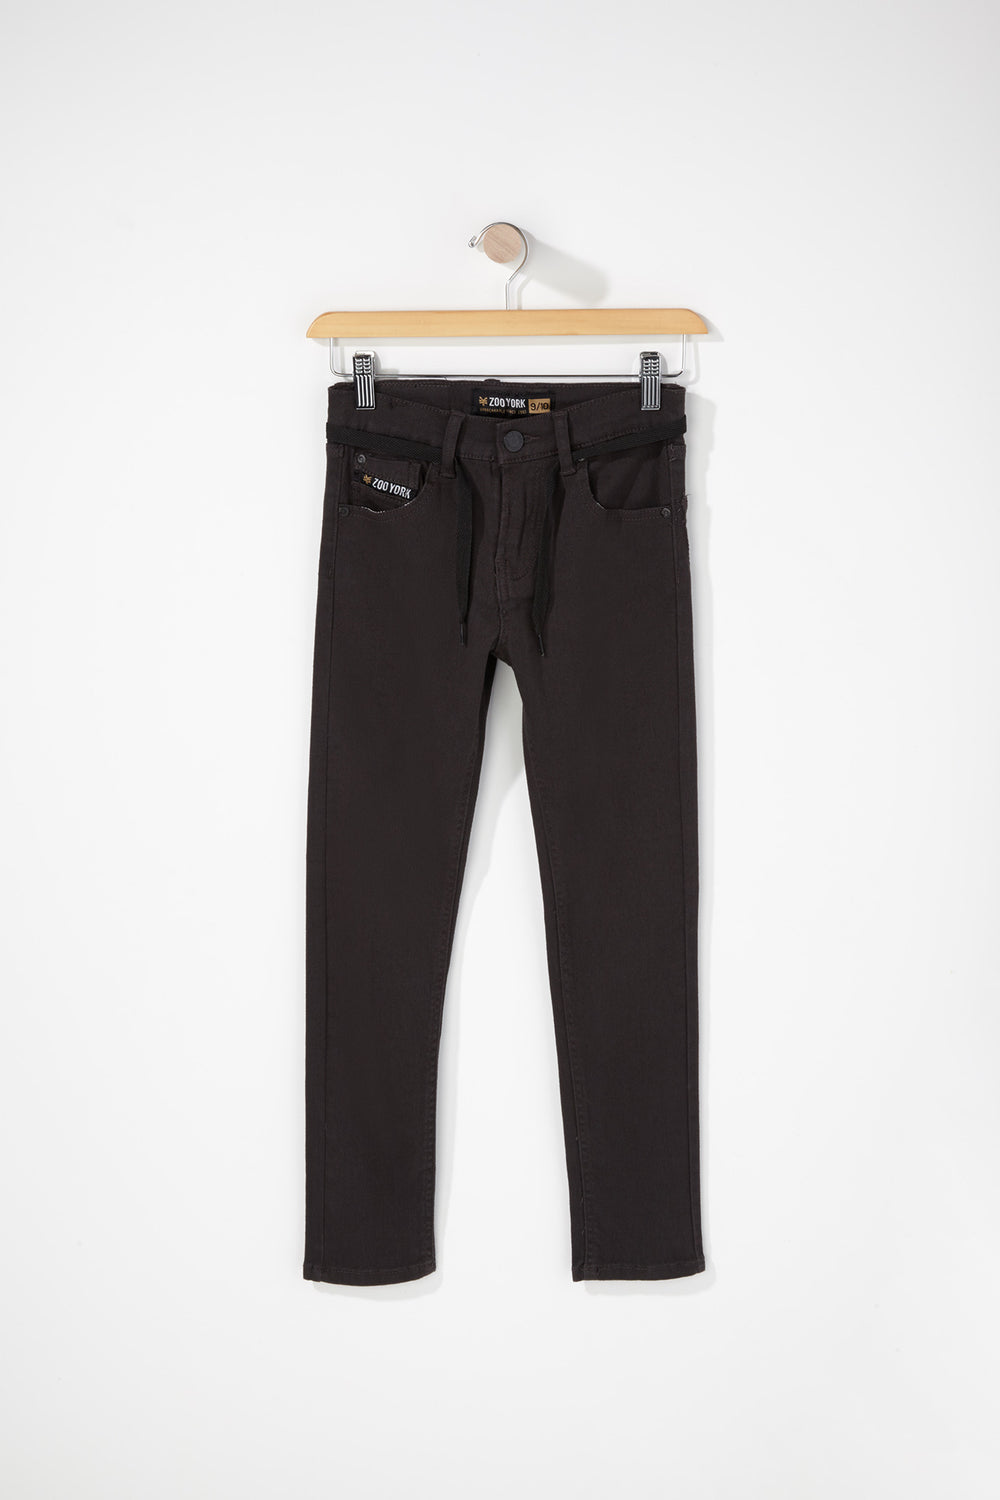 Zoo York Boys Stretch Skinny Jeans Dark Grey